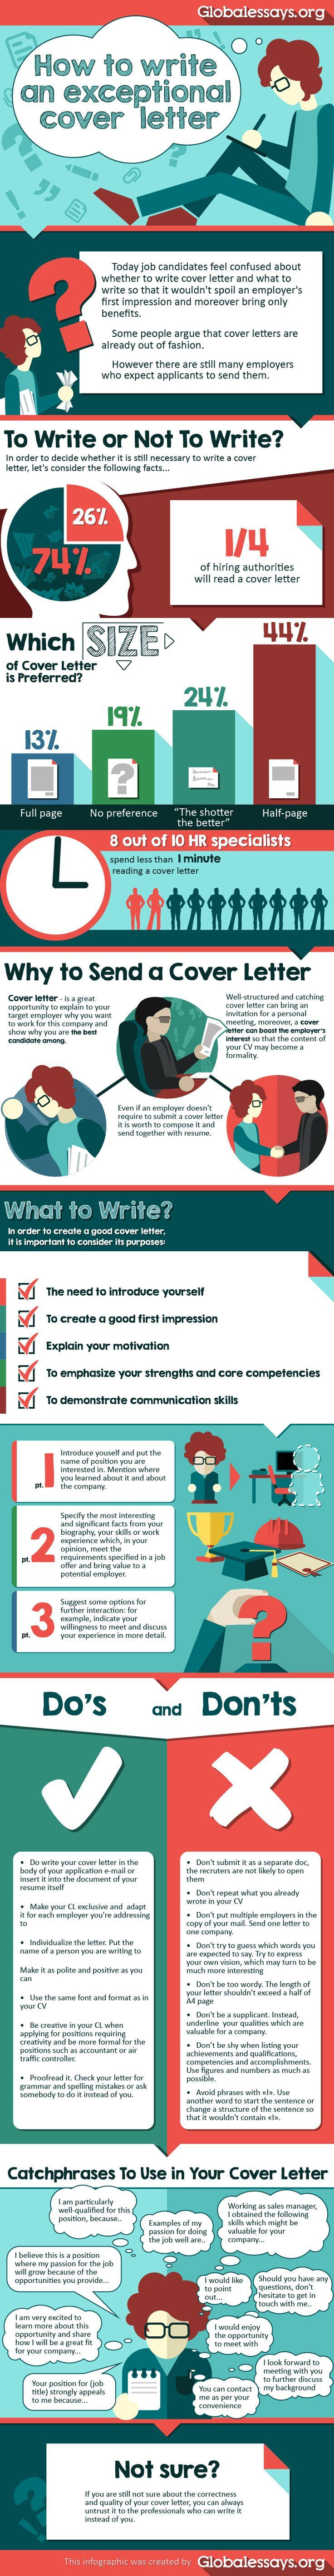 How To Write An Exceptional Cover Letter   Cosas interesantes, Exito ...